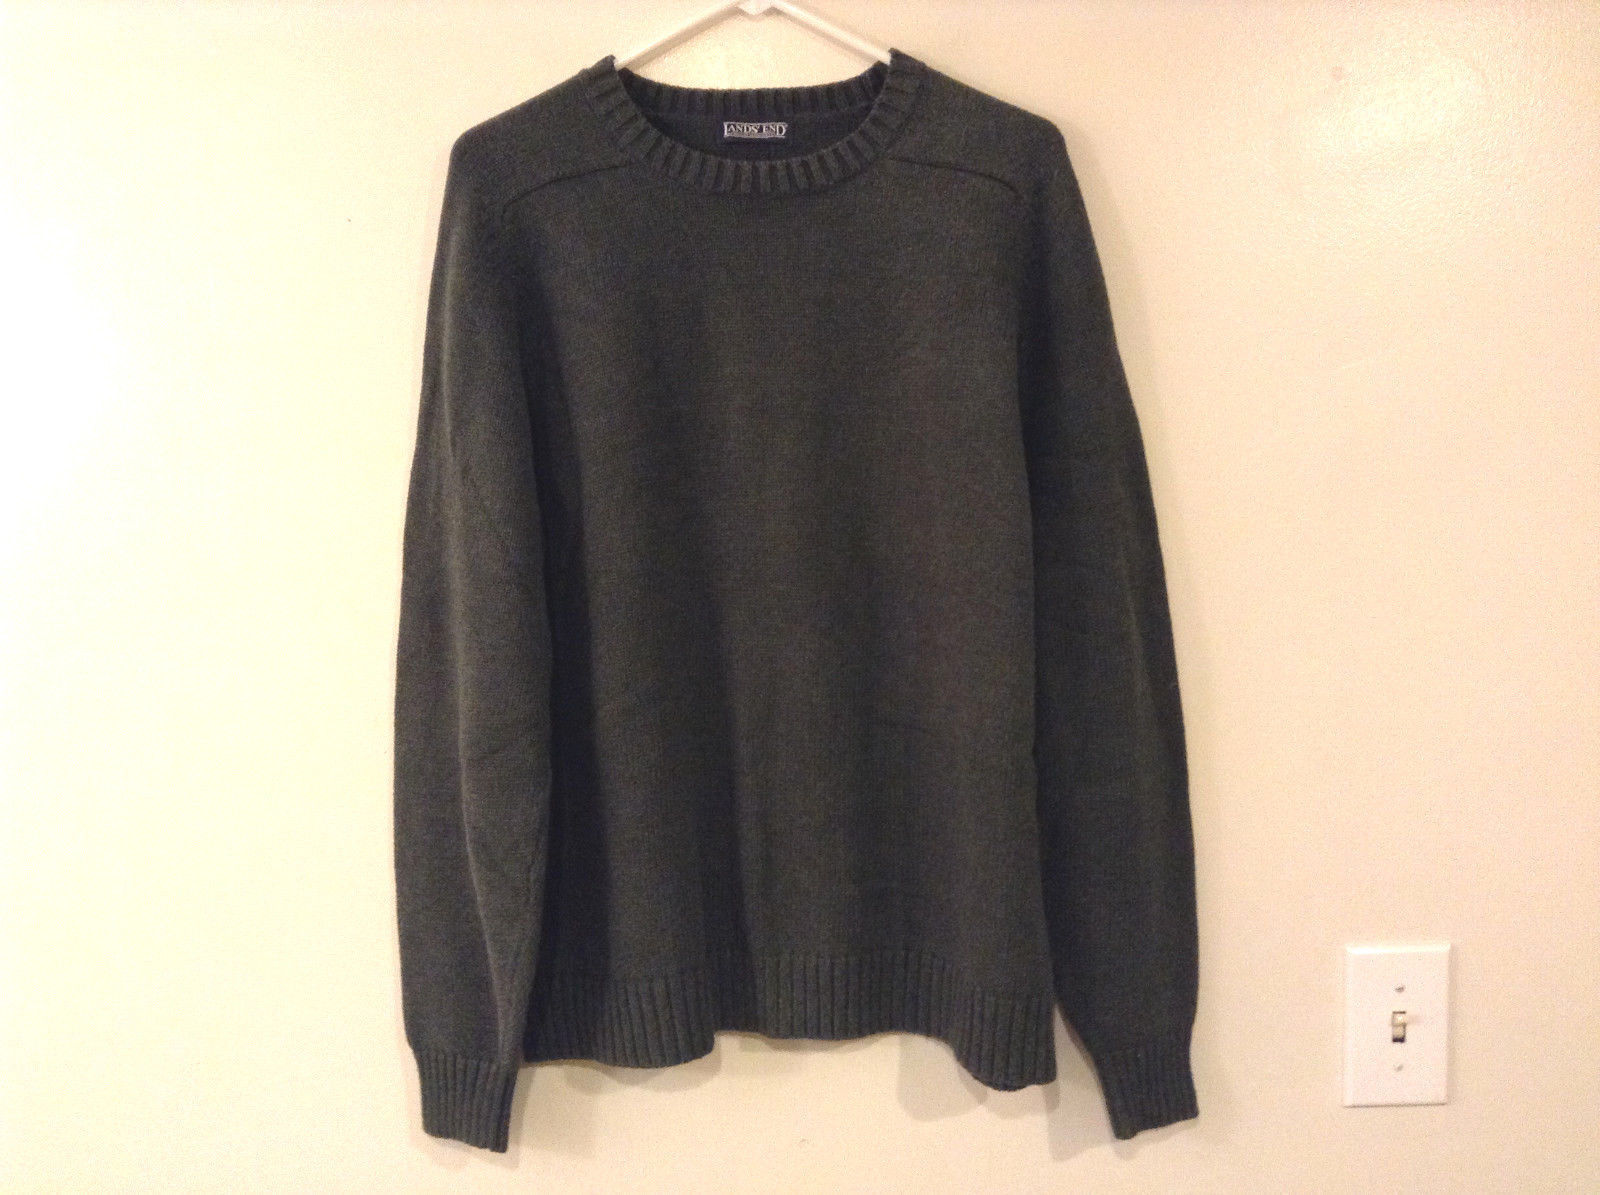 Lands' End Men's Size L Sweater Dark Green Crew Neck Long Sleeves Heavy Knit